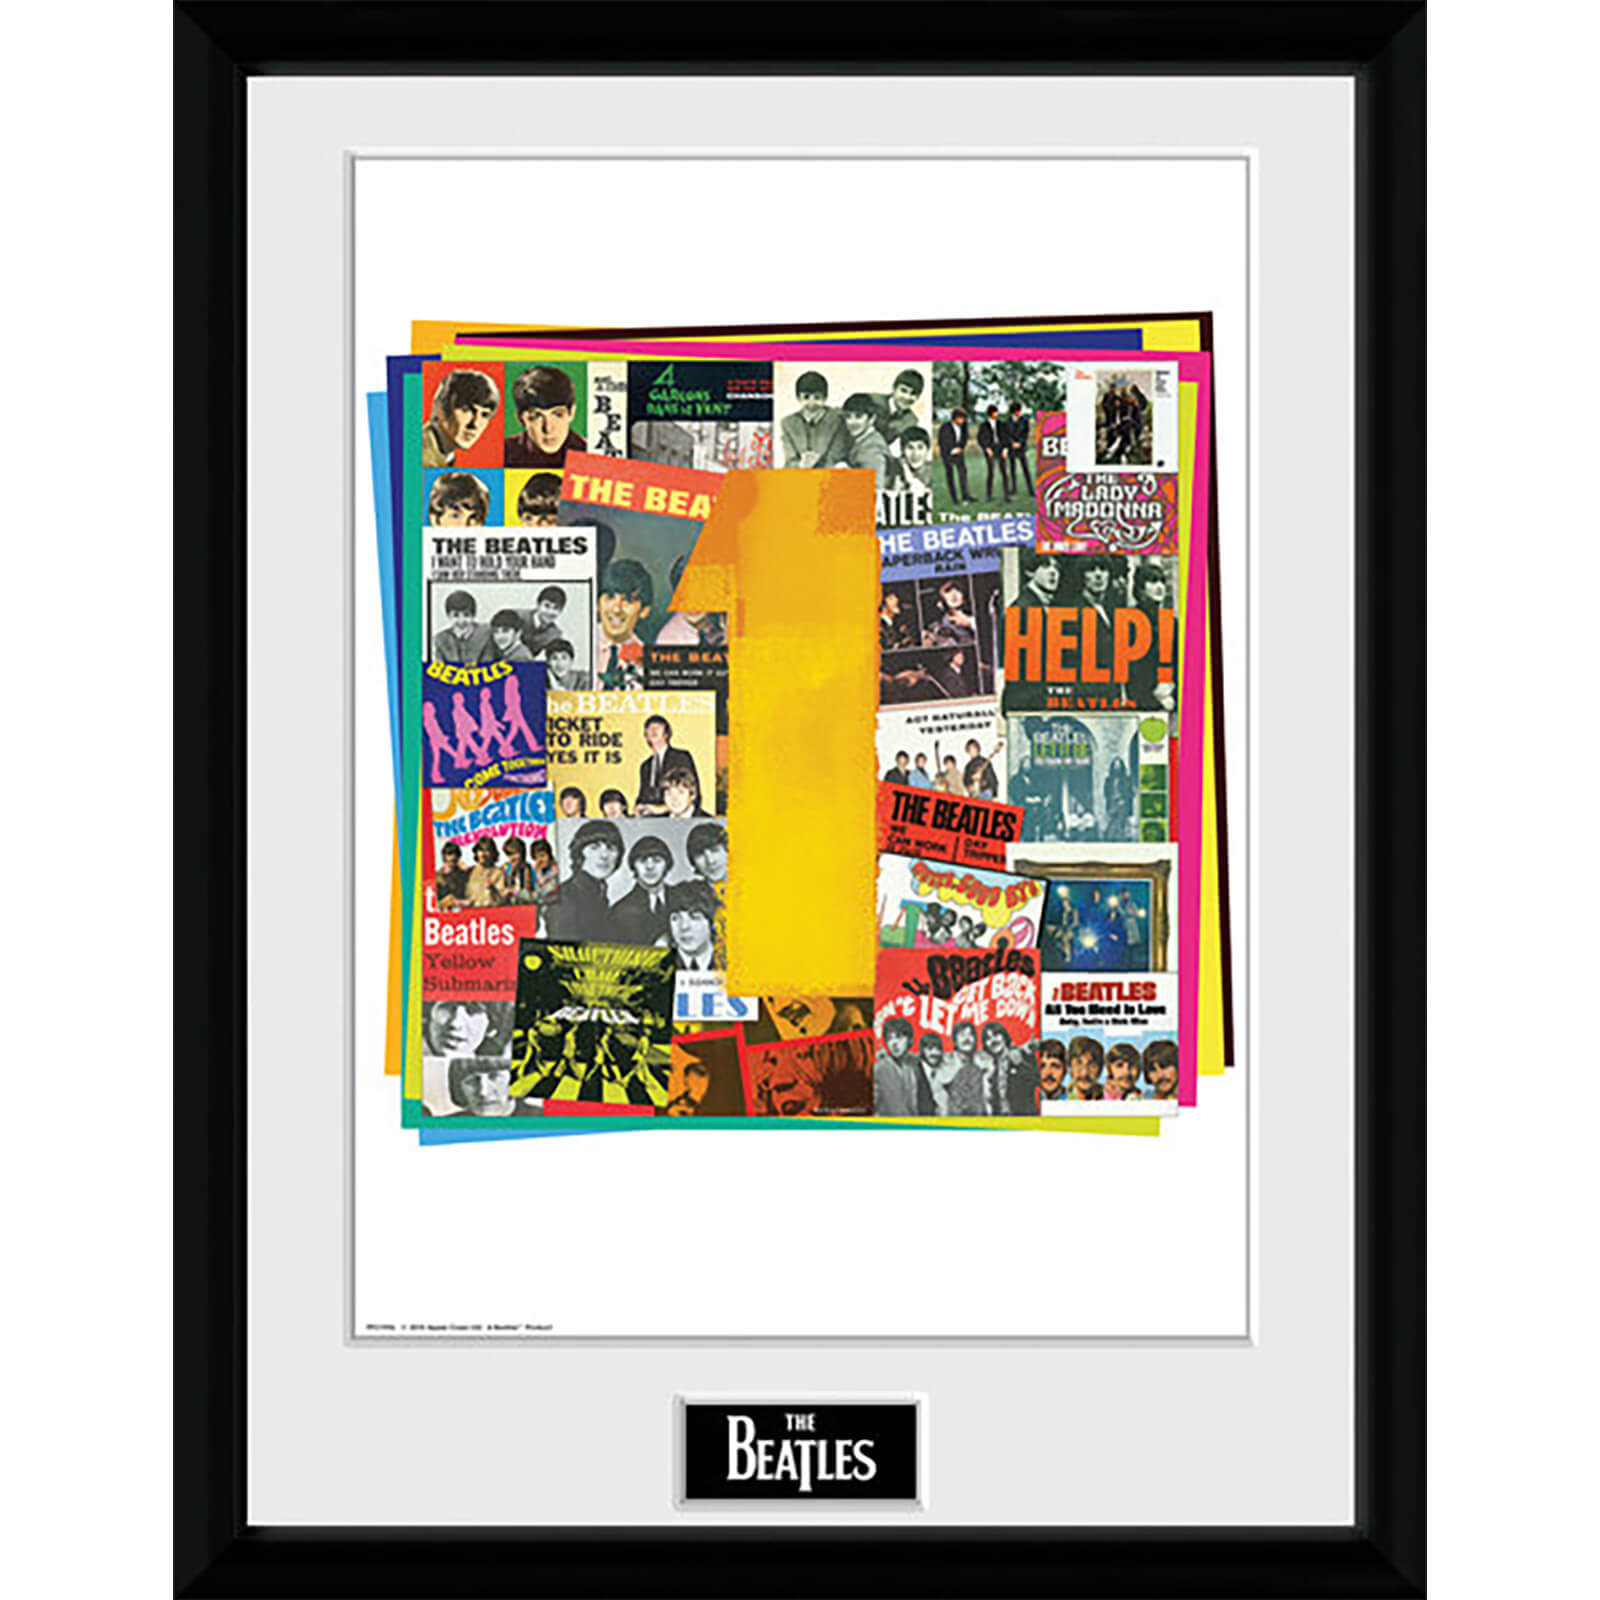 The Beatles No. 1 Albums - 16 x 12 Inches Framed Photograph